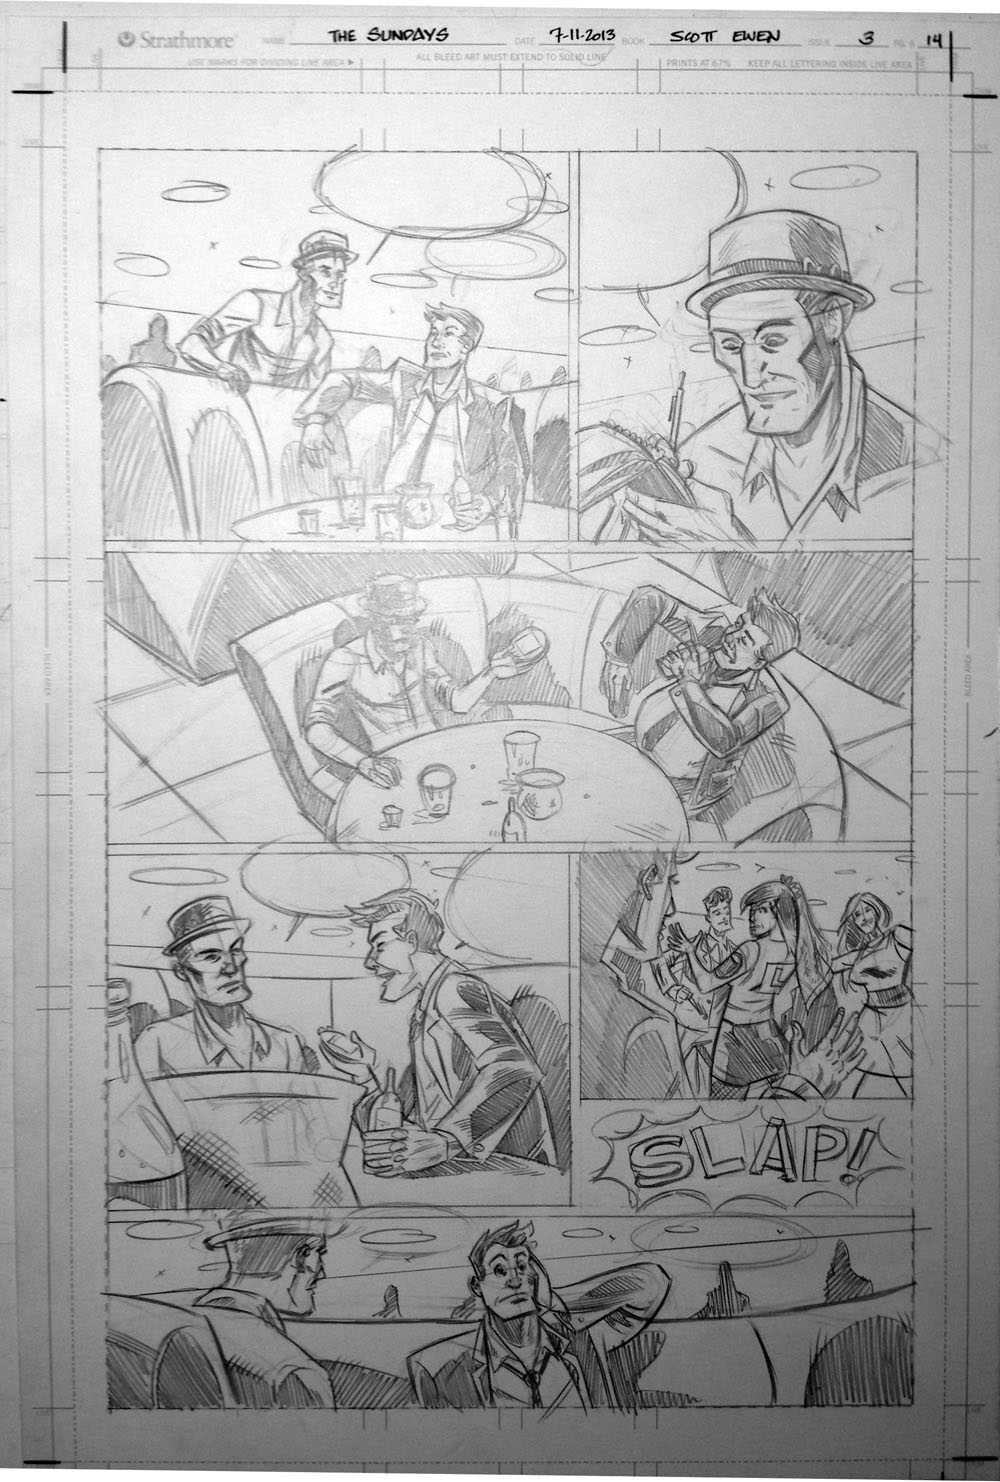 the_sundays__3_page_14_pencils_by_scottewen-d6e8sle.jpg